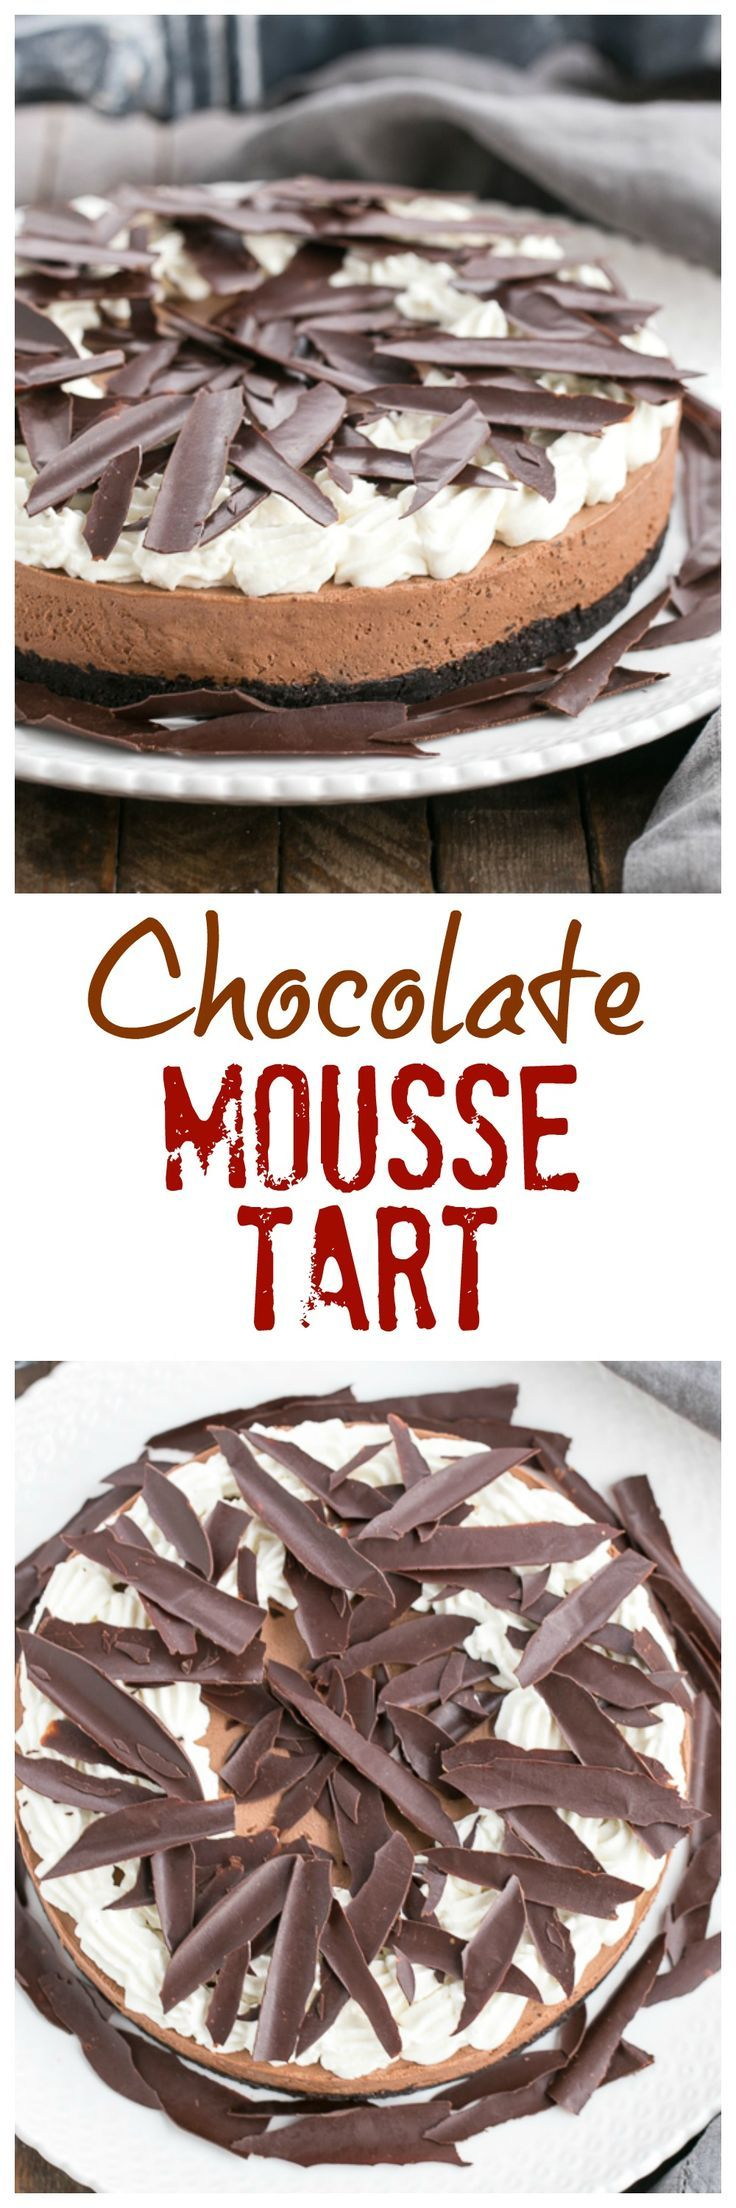 Easy Chocolate Mousse Cake | Chocolate cookie crust, whipped chocolate mousse topped with chocolate shards @lizzydo